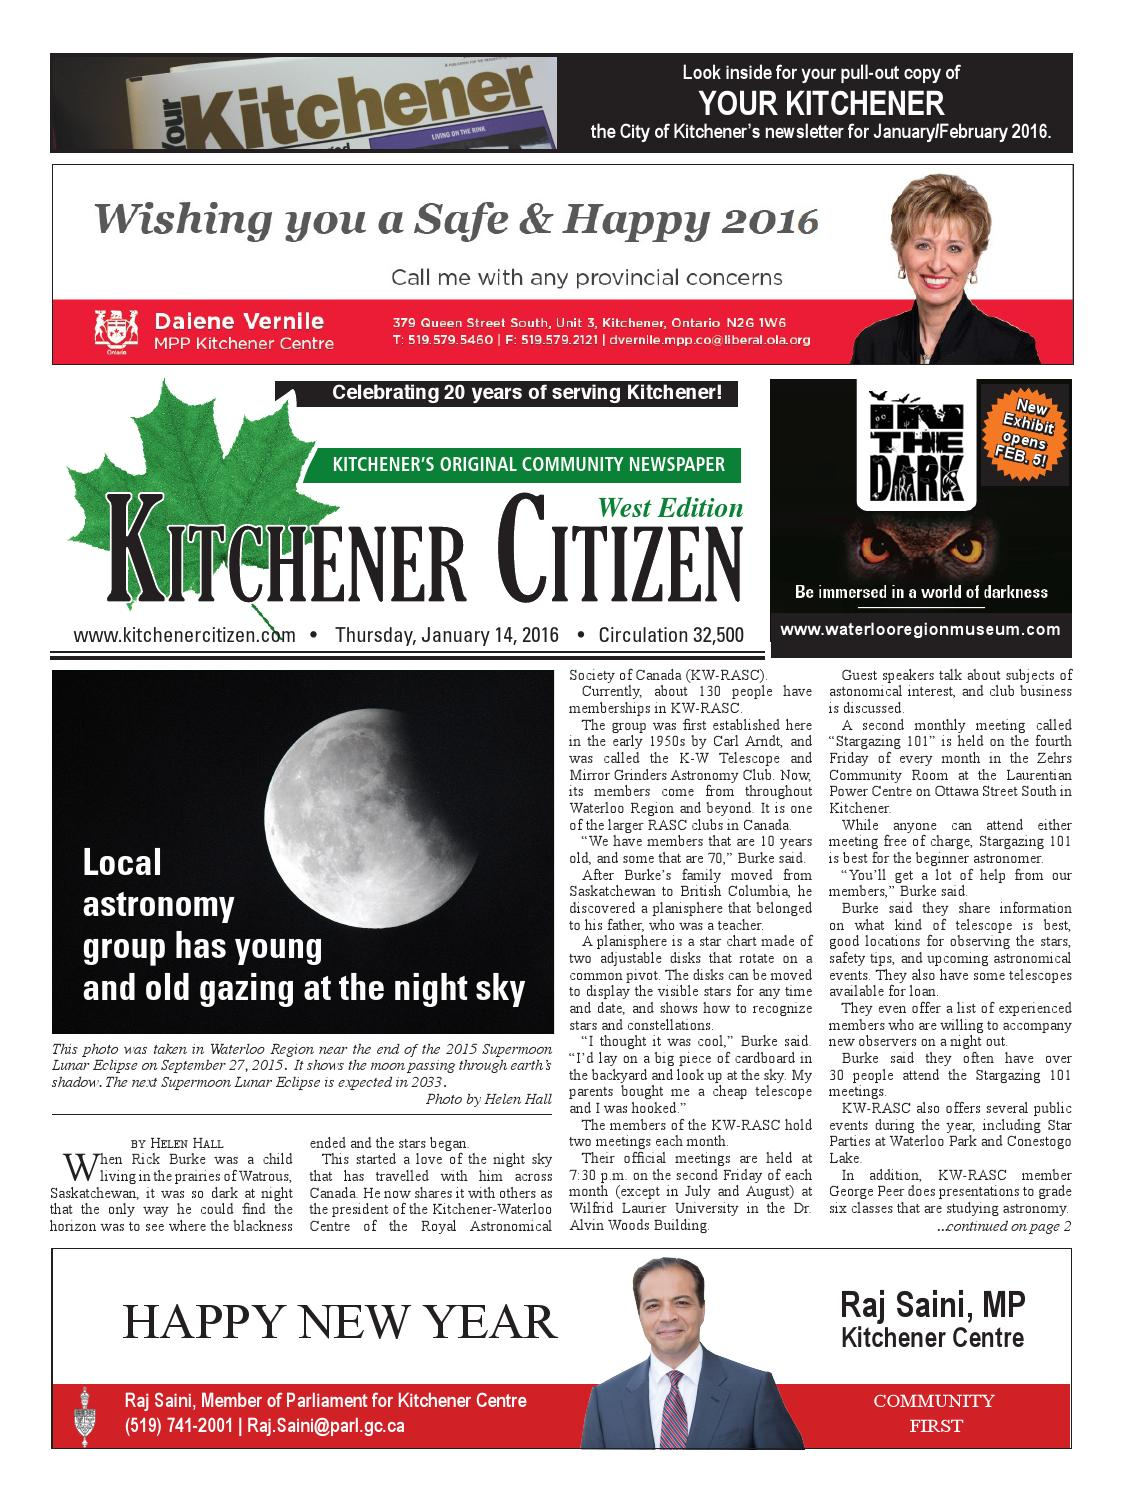 Kitchener Citizen - West Edition - January 2016 by Kitchener Citizen ...